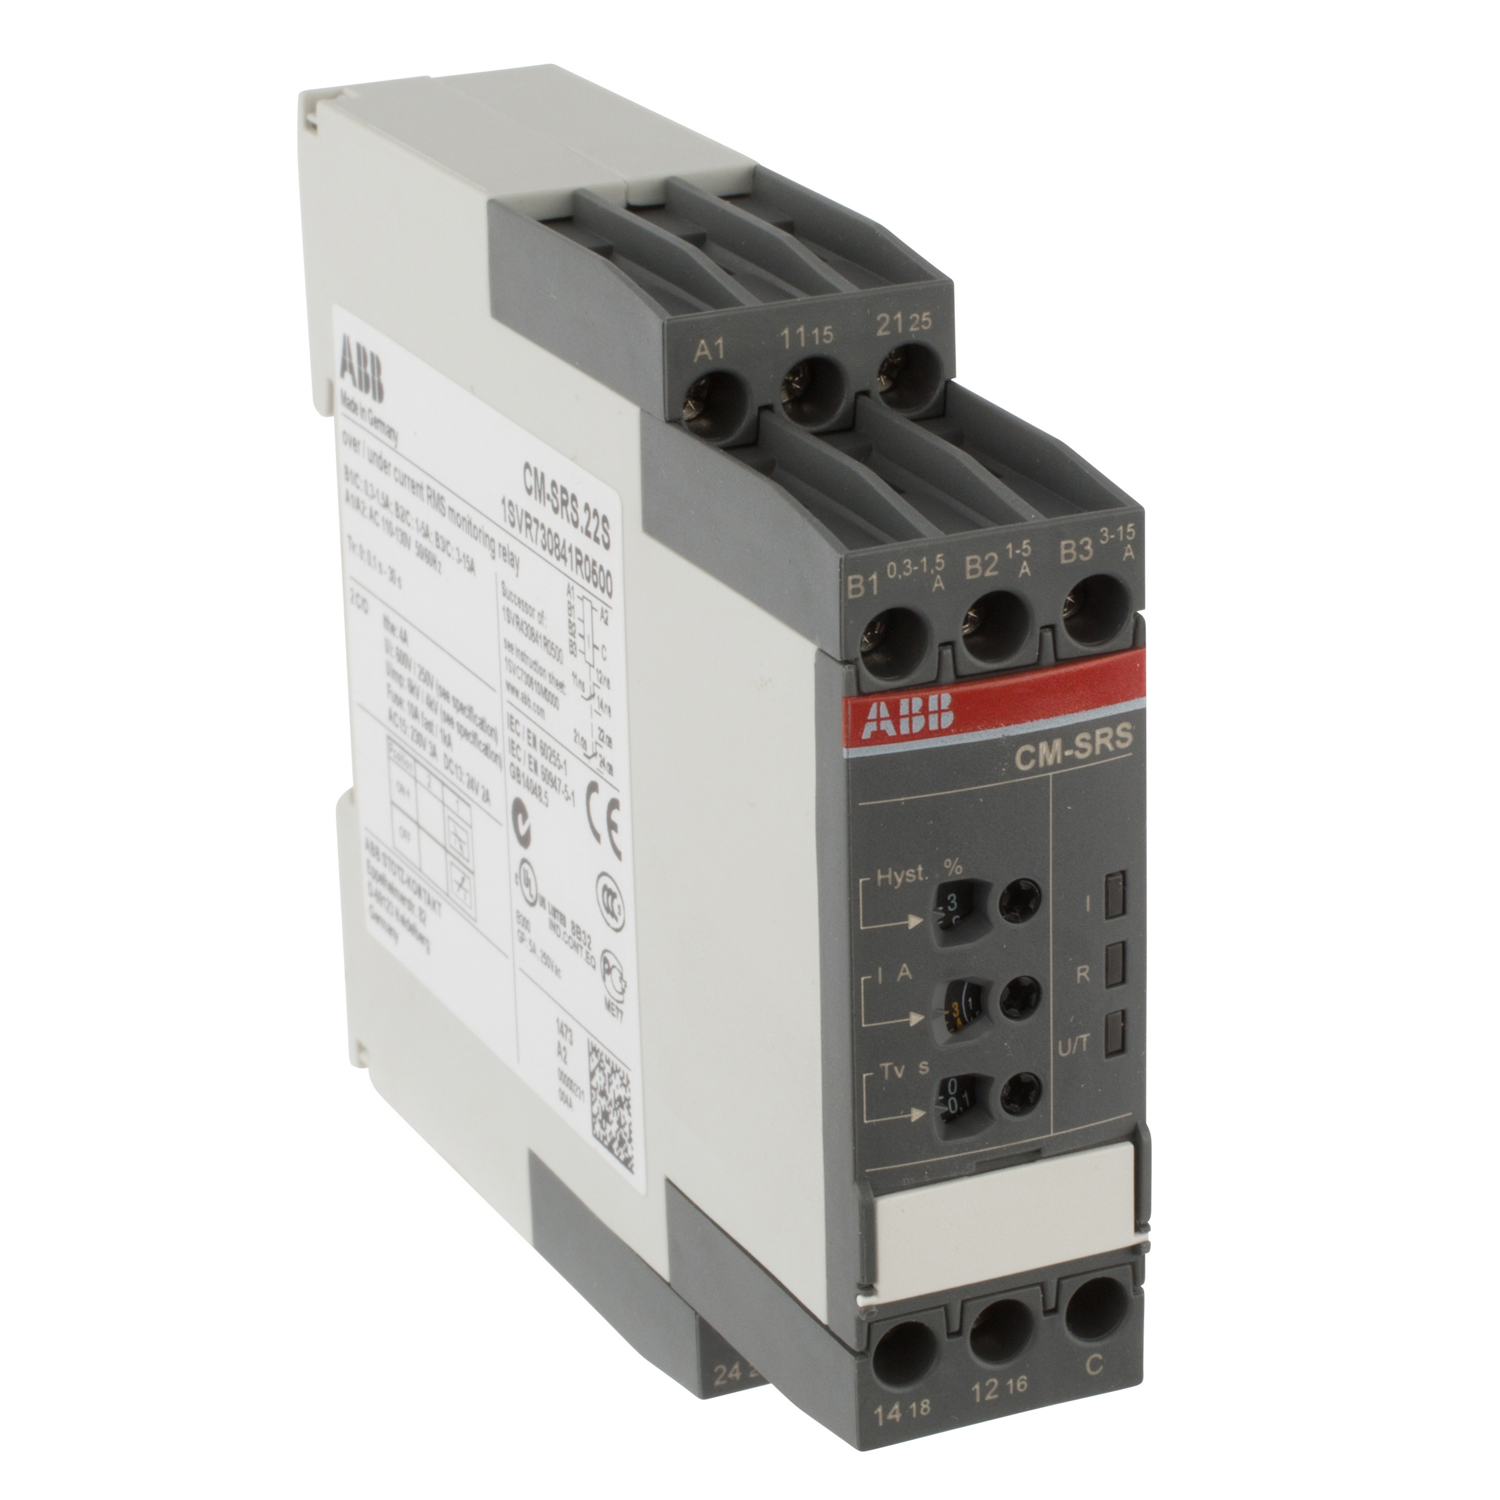 ABB 1SVR730841R0500 Current Monitoring Relay